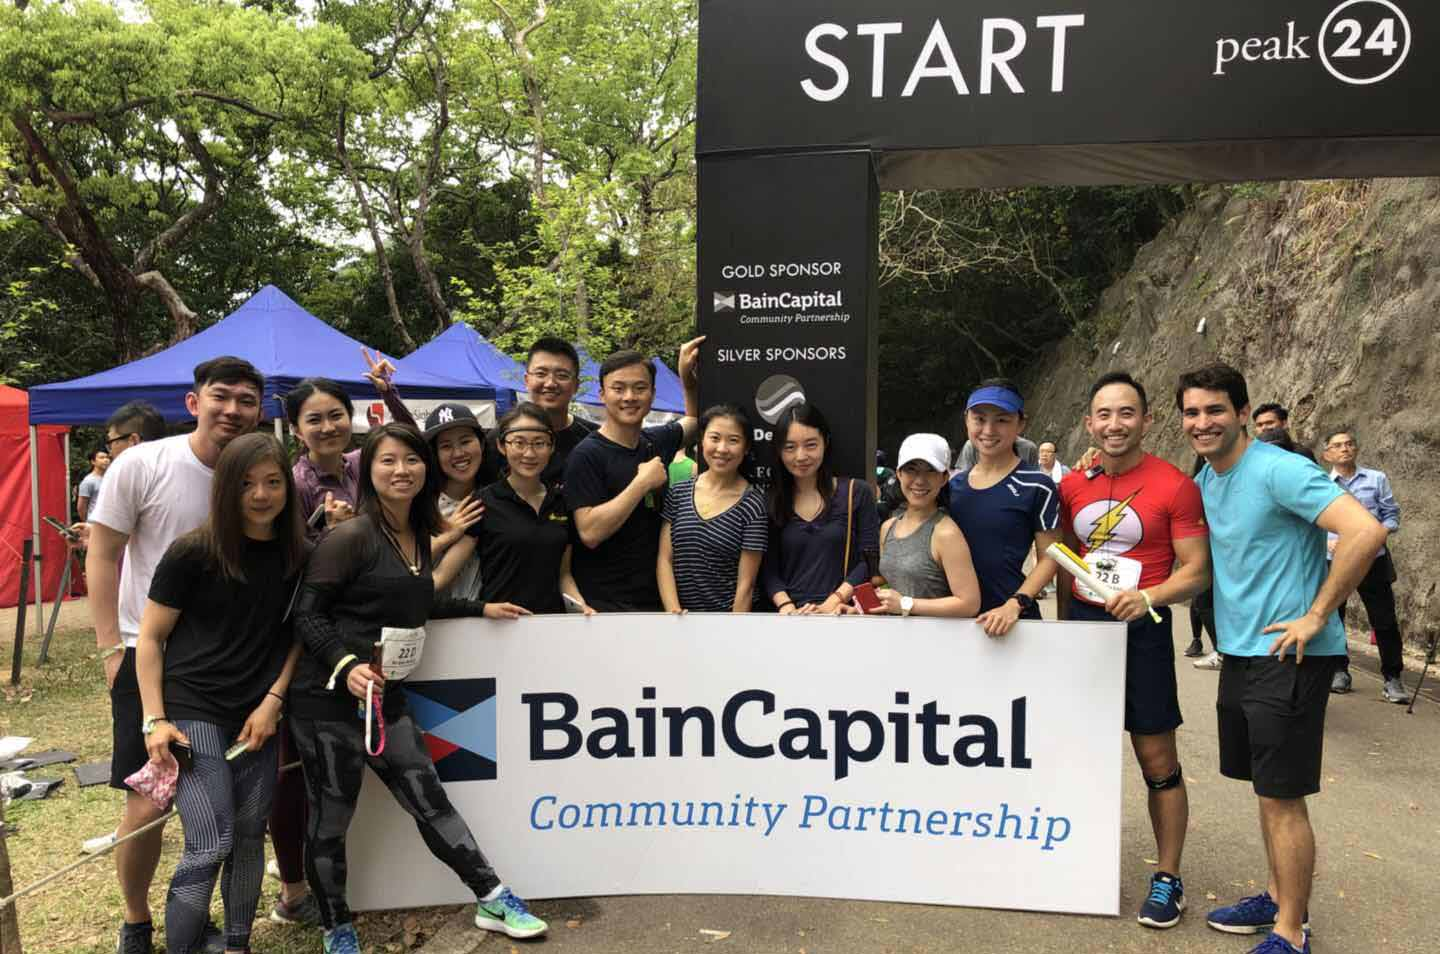 Bain Capital Participates in 2018 Peak 24 Race in Hong Kong